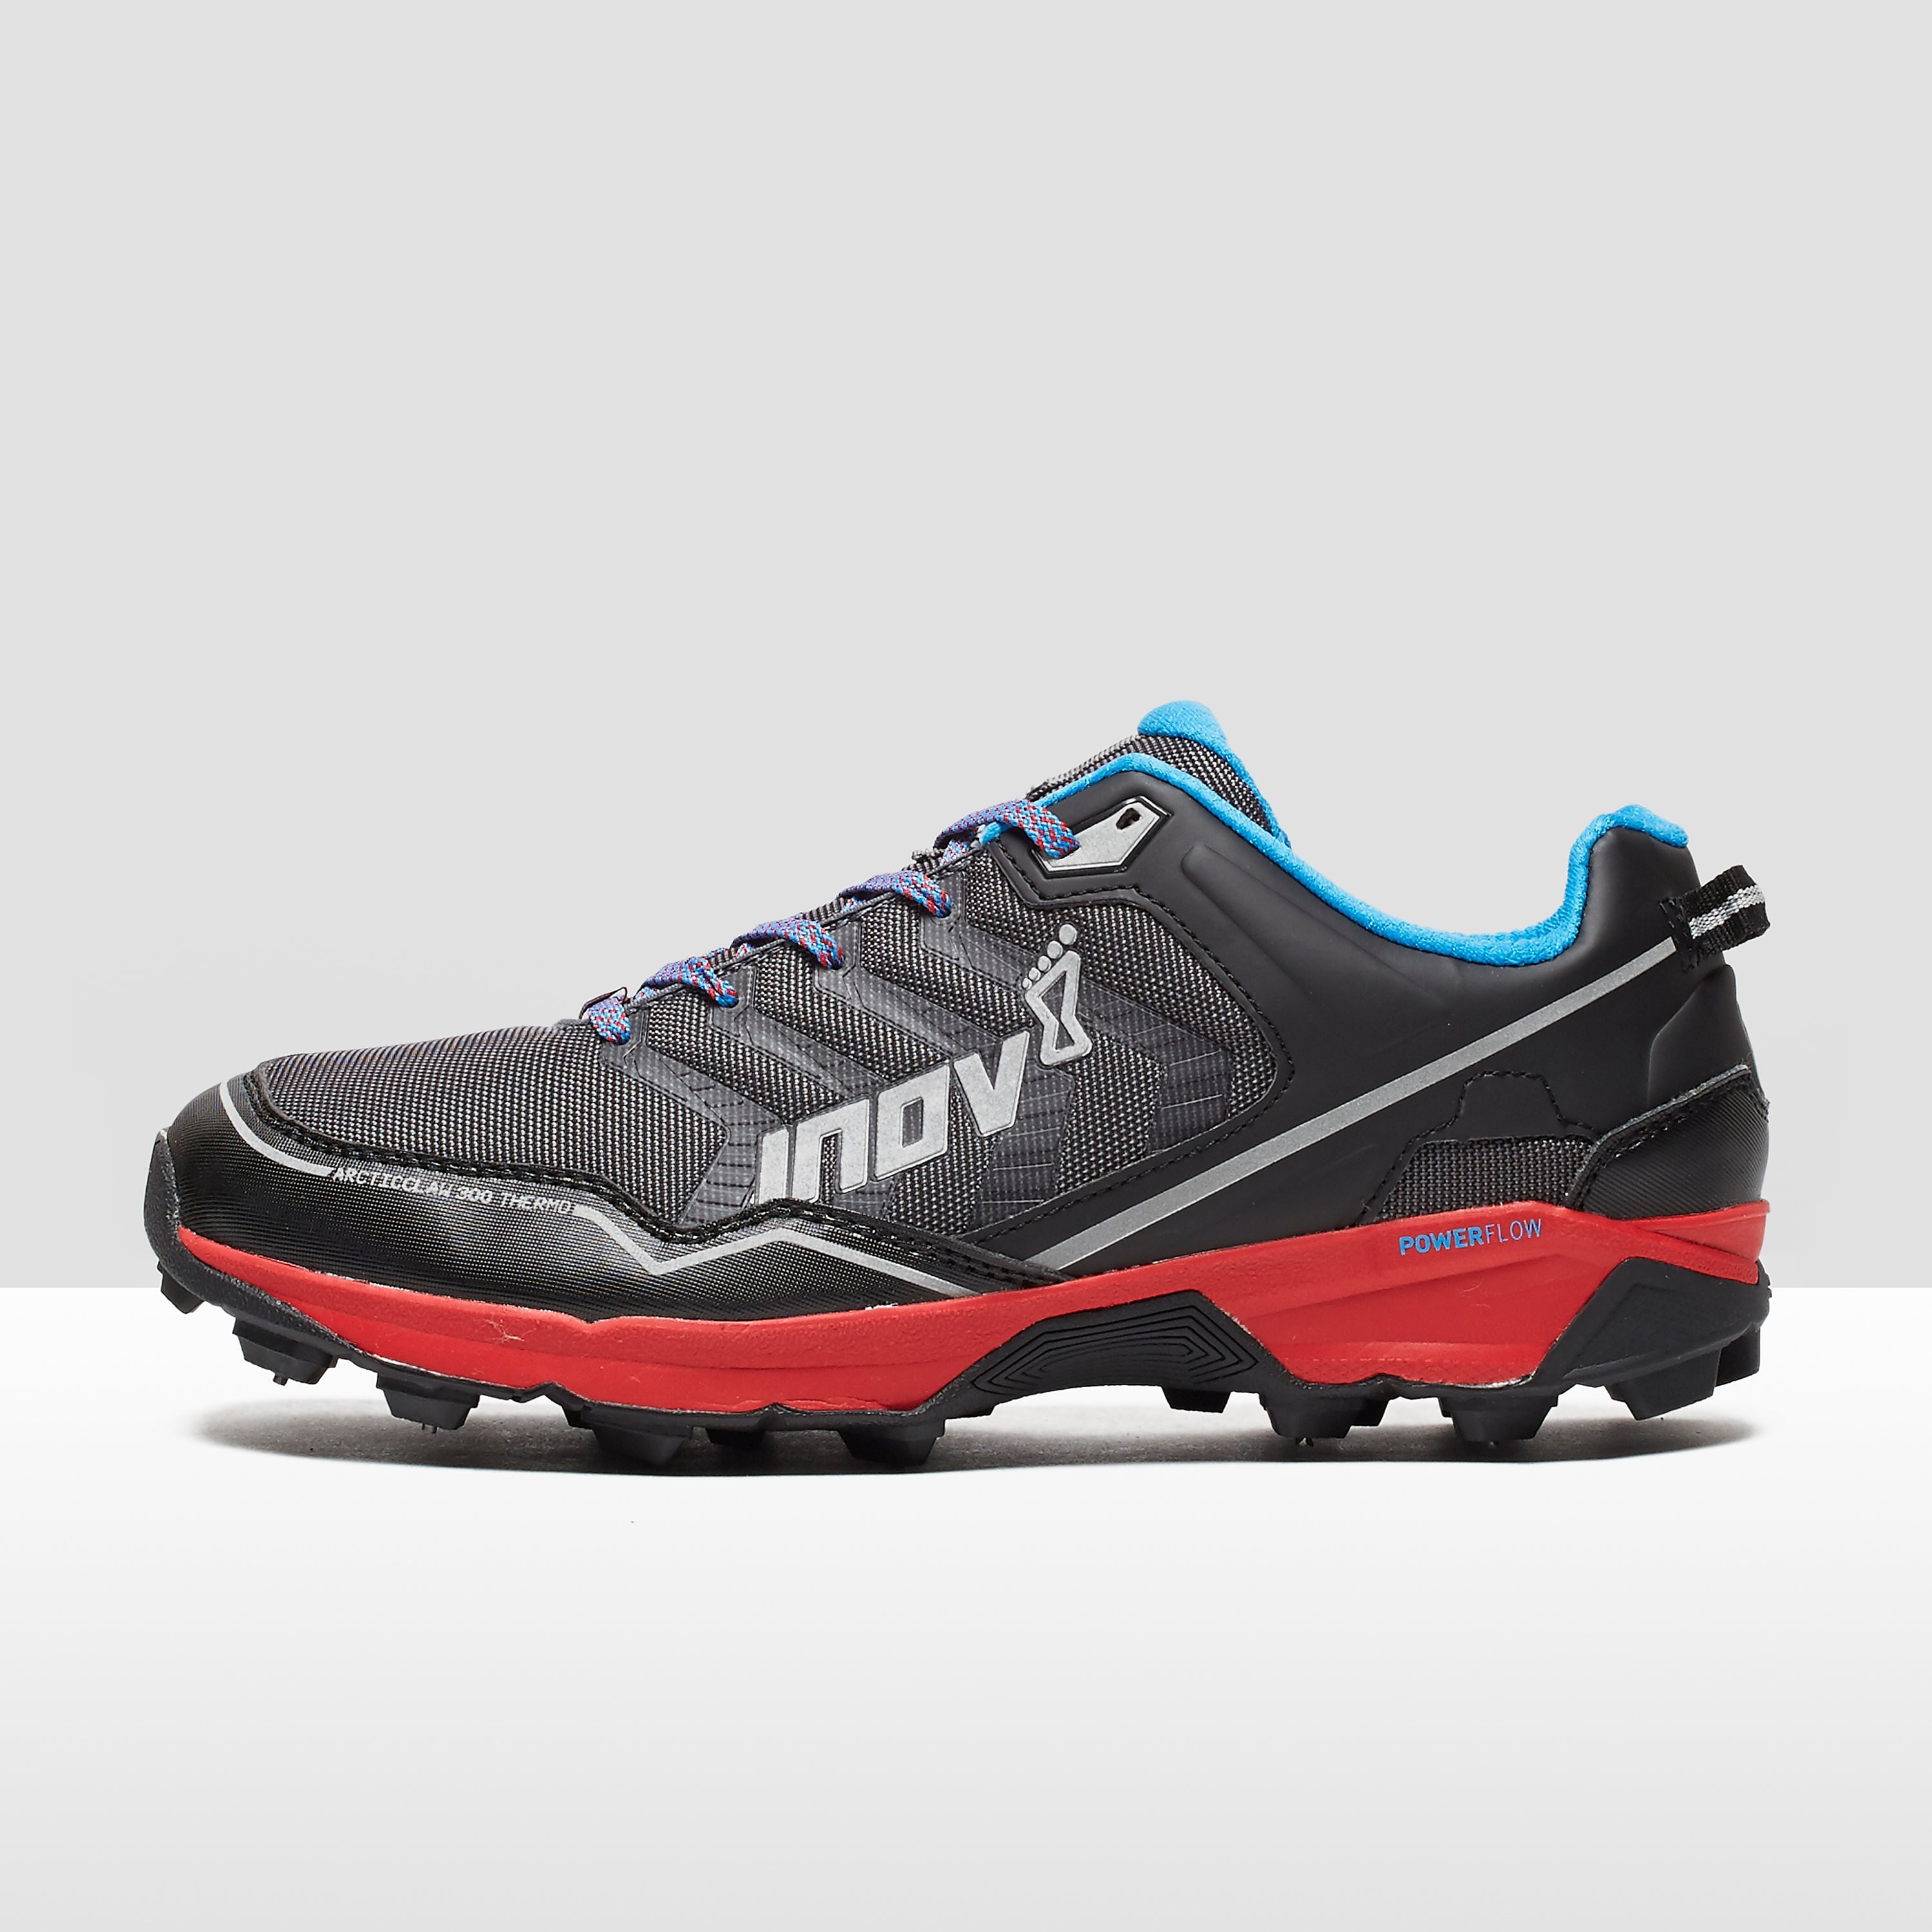 Inov-8 Arctic Claw 300 Thermo Men's Running Shoes